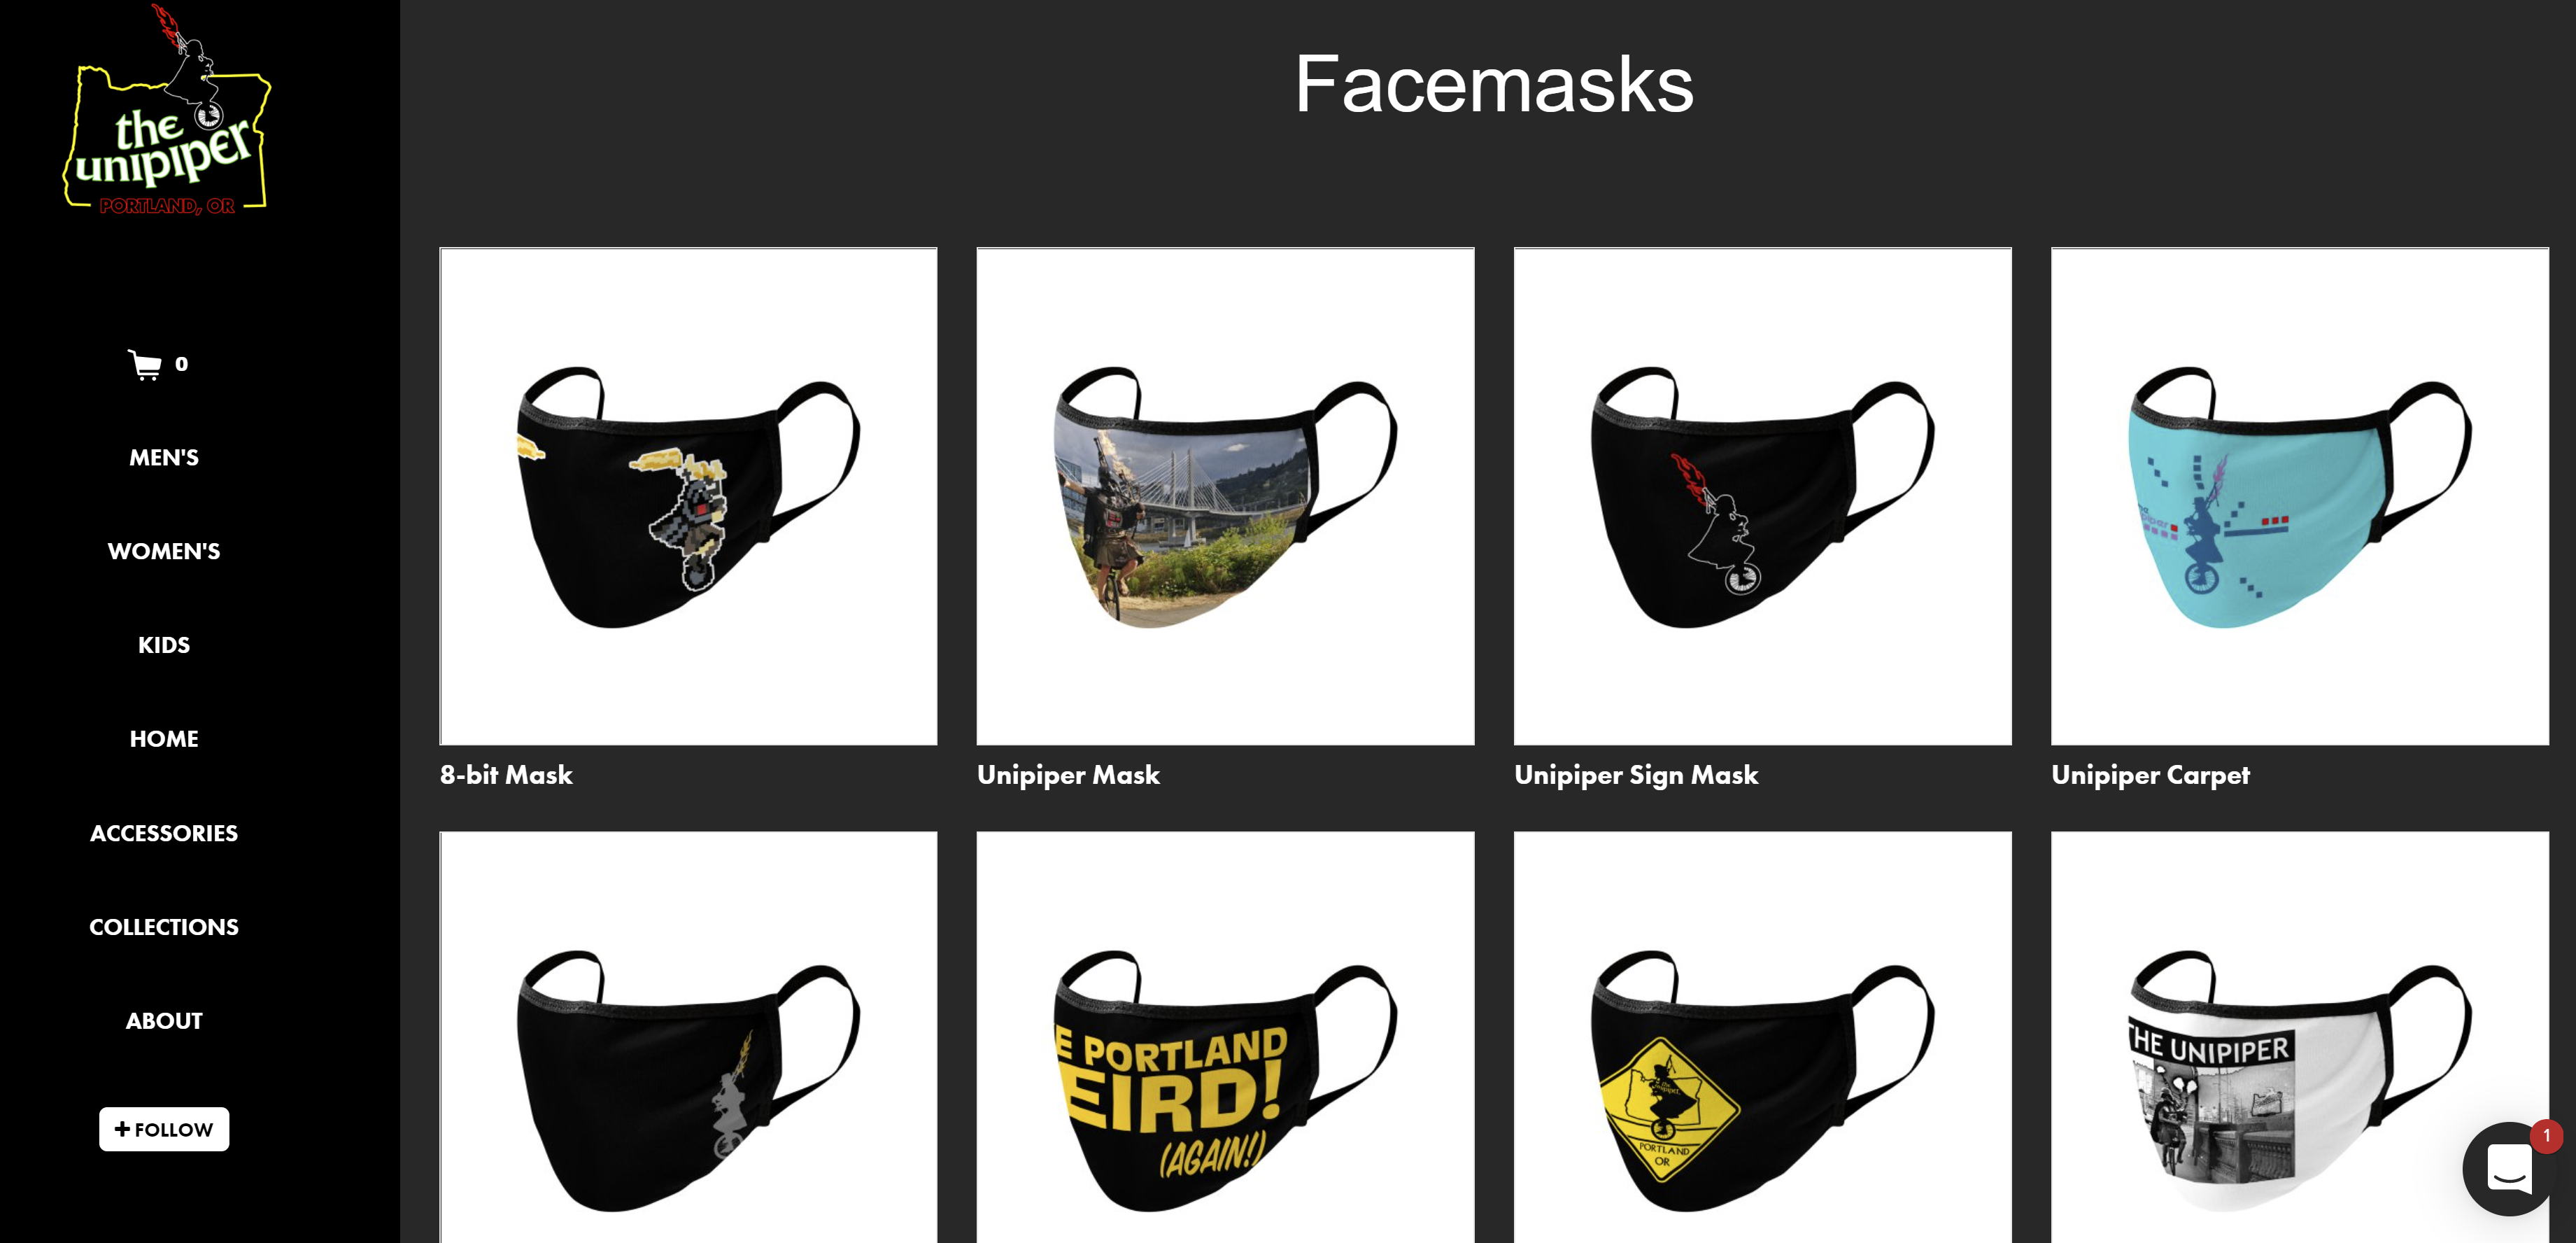 https://unipiper.threadless.com/collections/facemasks